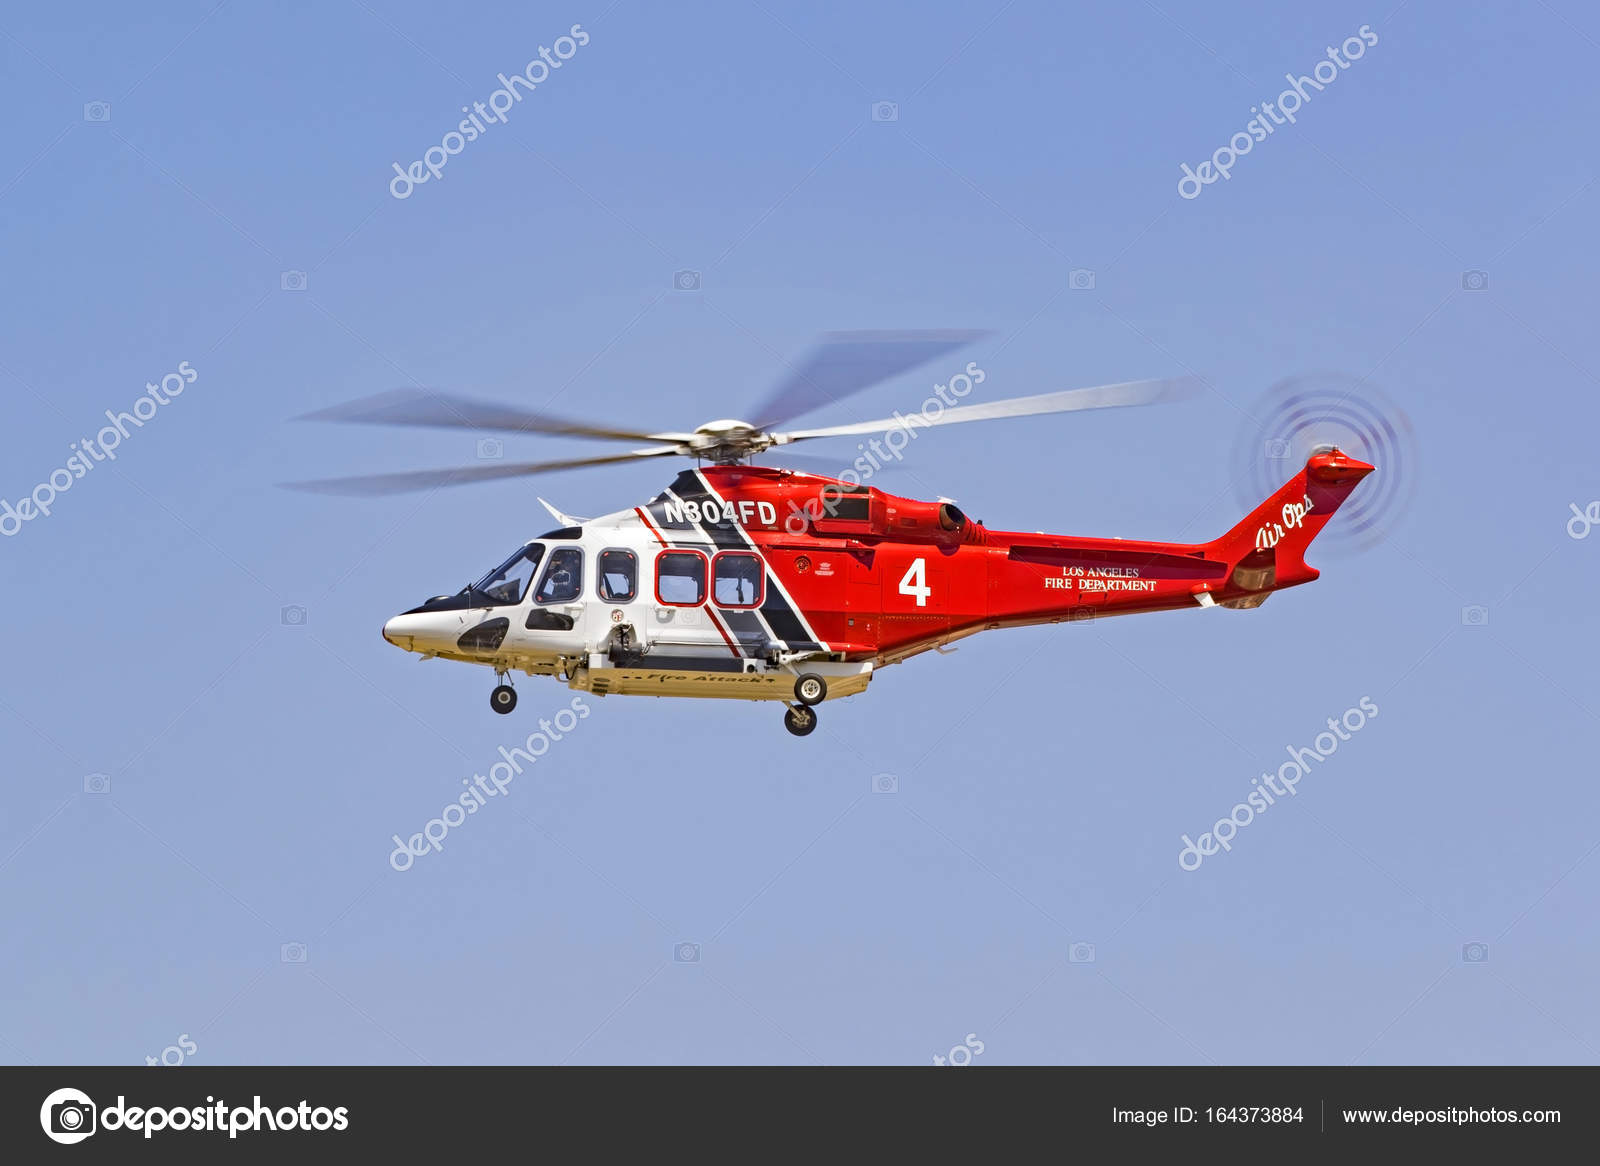 Elicottero 139 : Los angeles fire department aw 139 a airshow di volo in elicottero